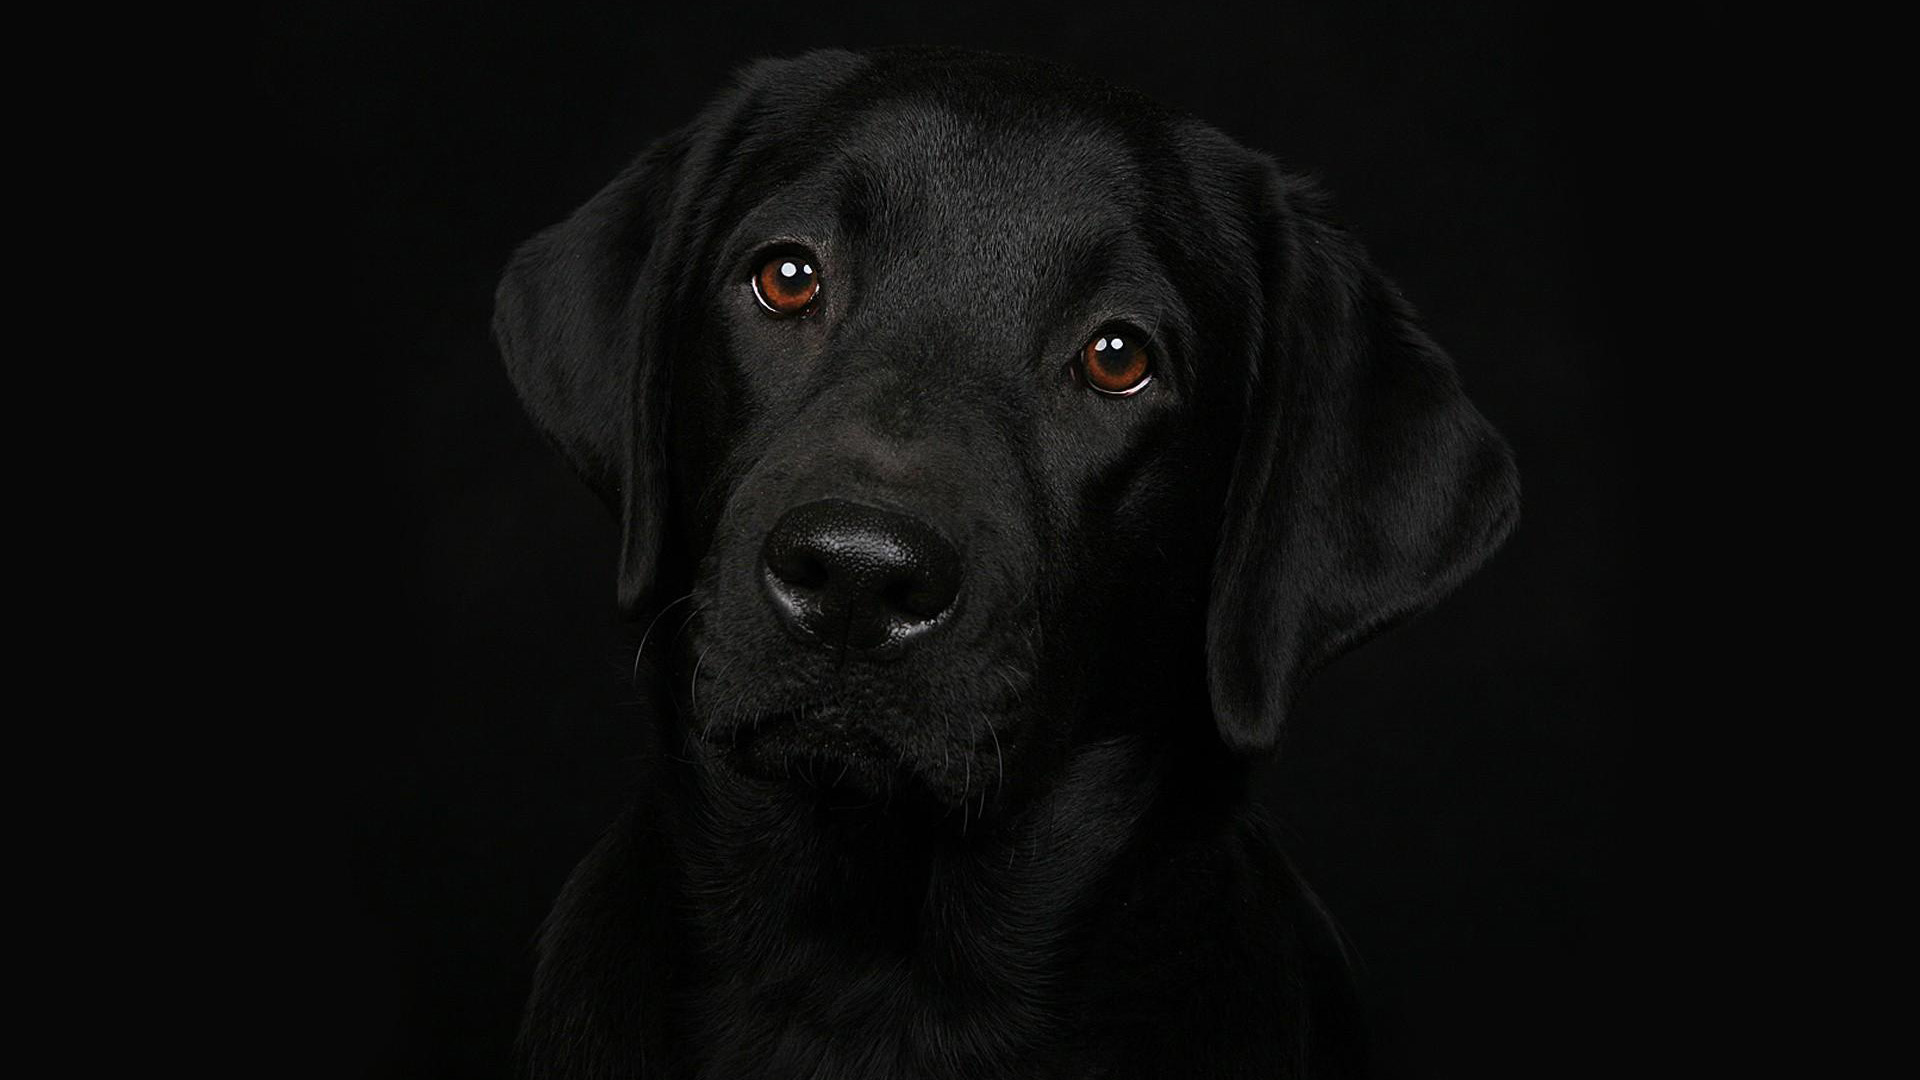 Download Black Dog Wallpaper The Quotes Land 1920x1080